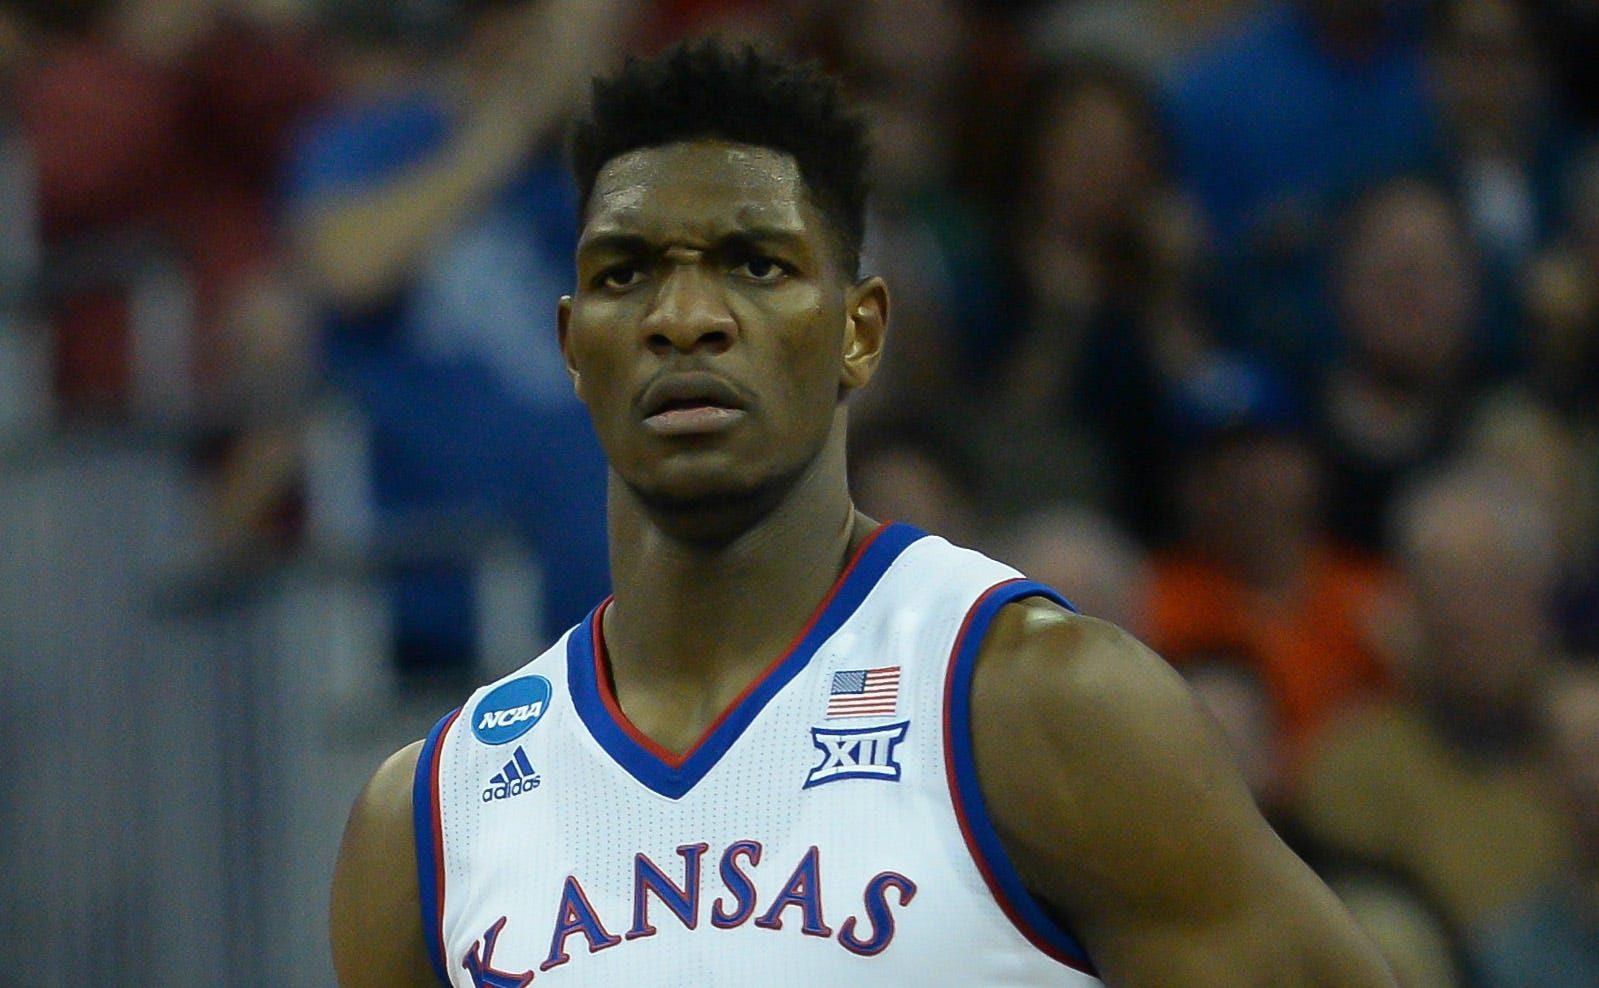 What is going on with suspended Kansas forward Silvio De Sousa and the NCAA?